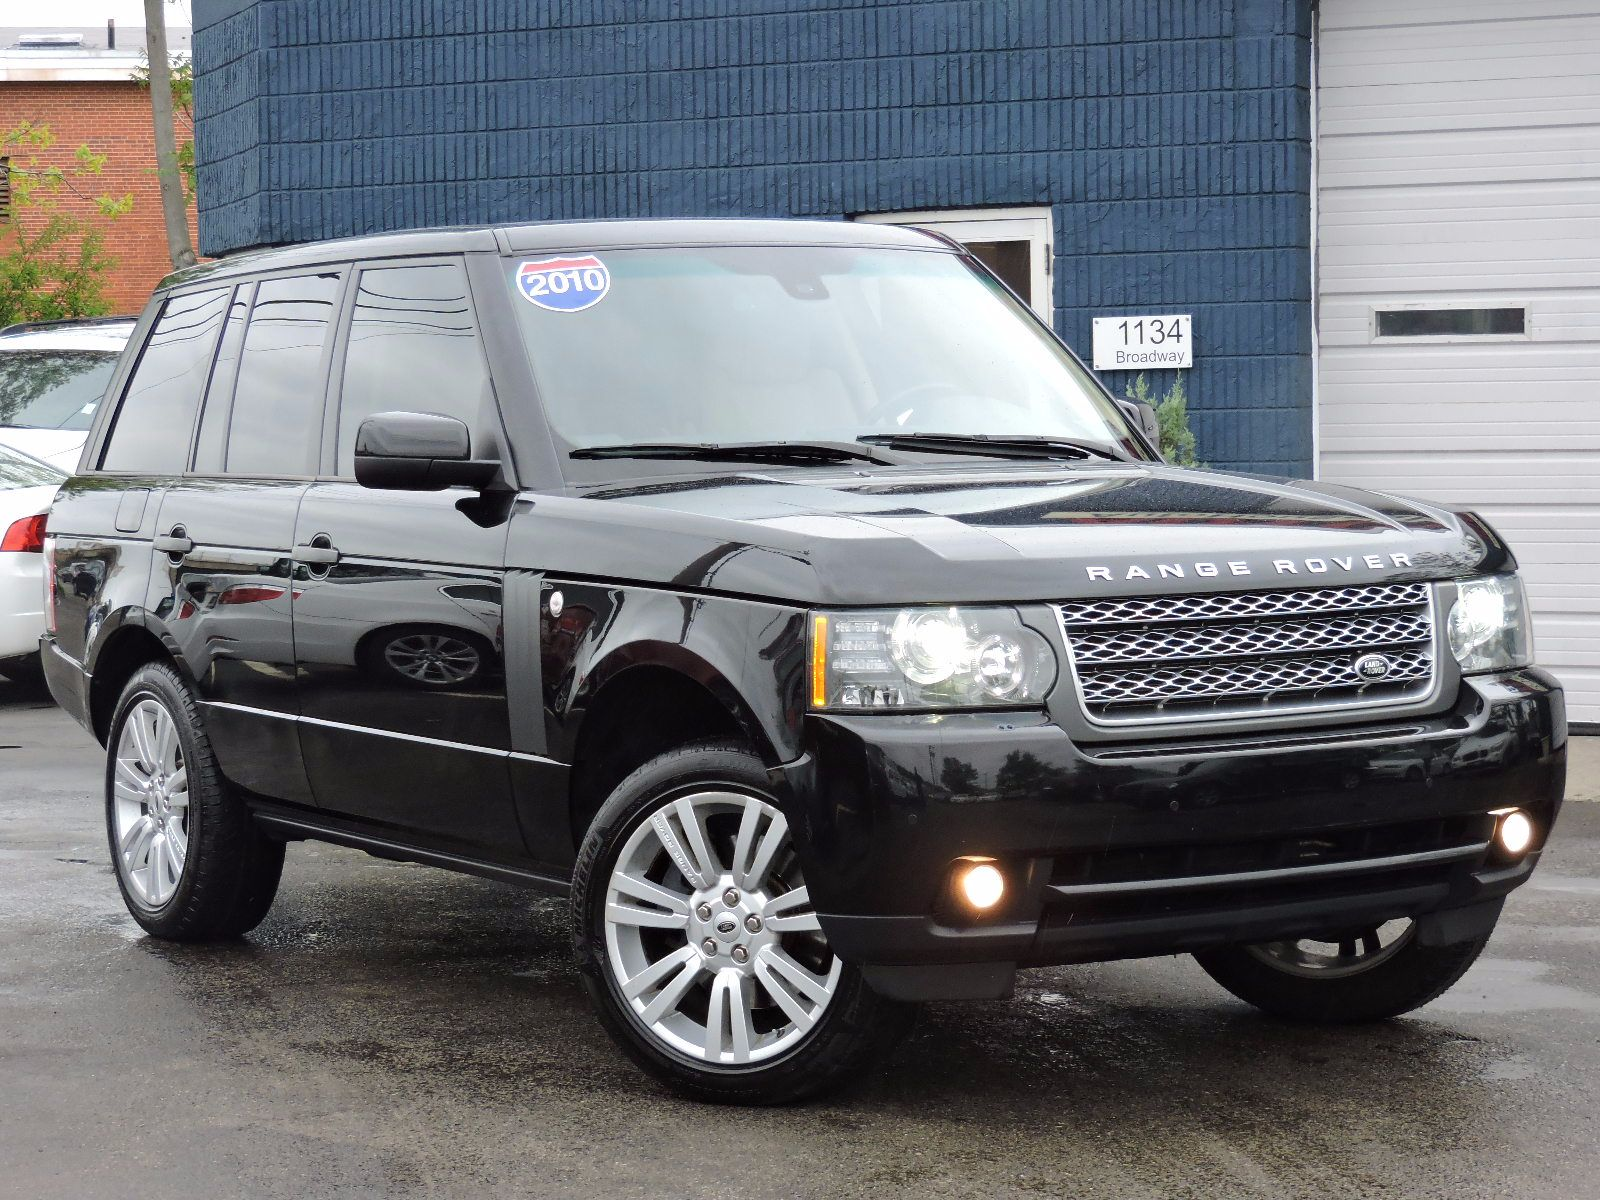 used 2010 land rover range rover hse lux at auto house usa. Black Bedroom Furniture Sets. Home Design Ideas